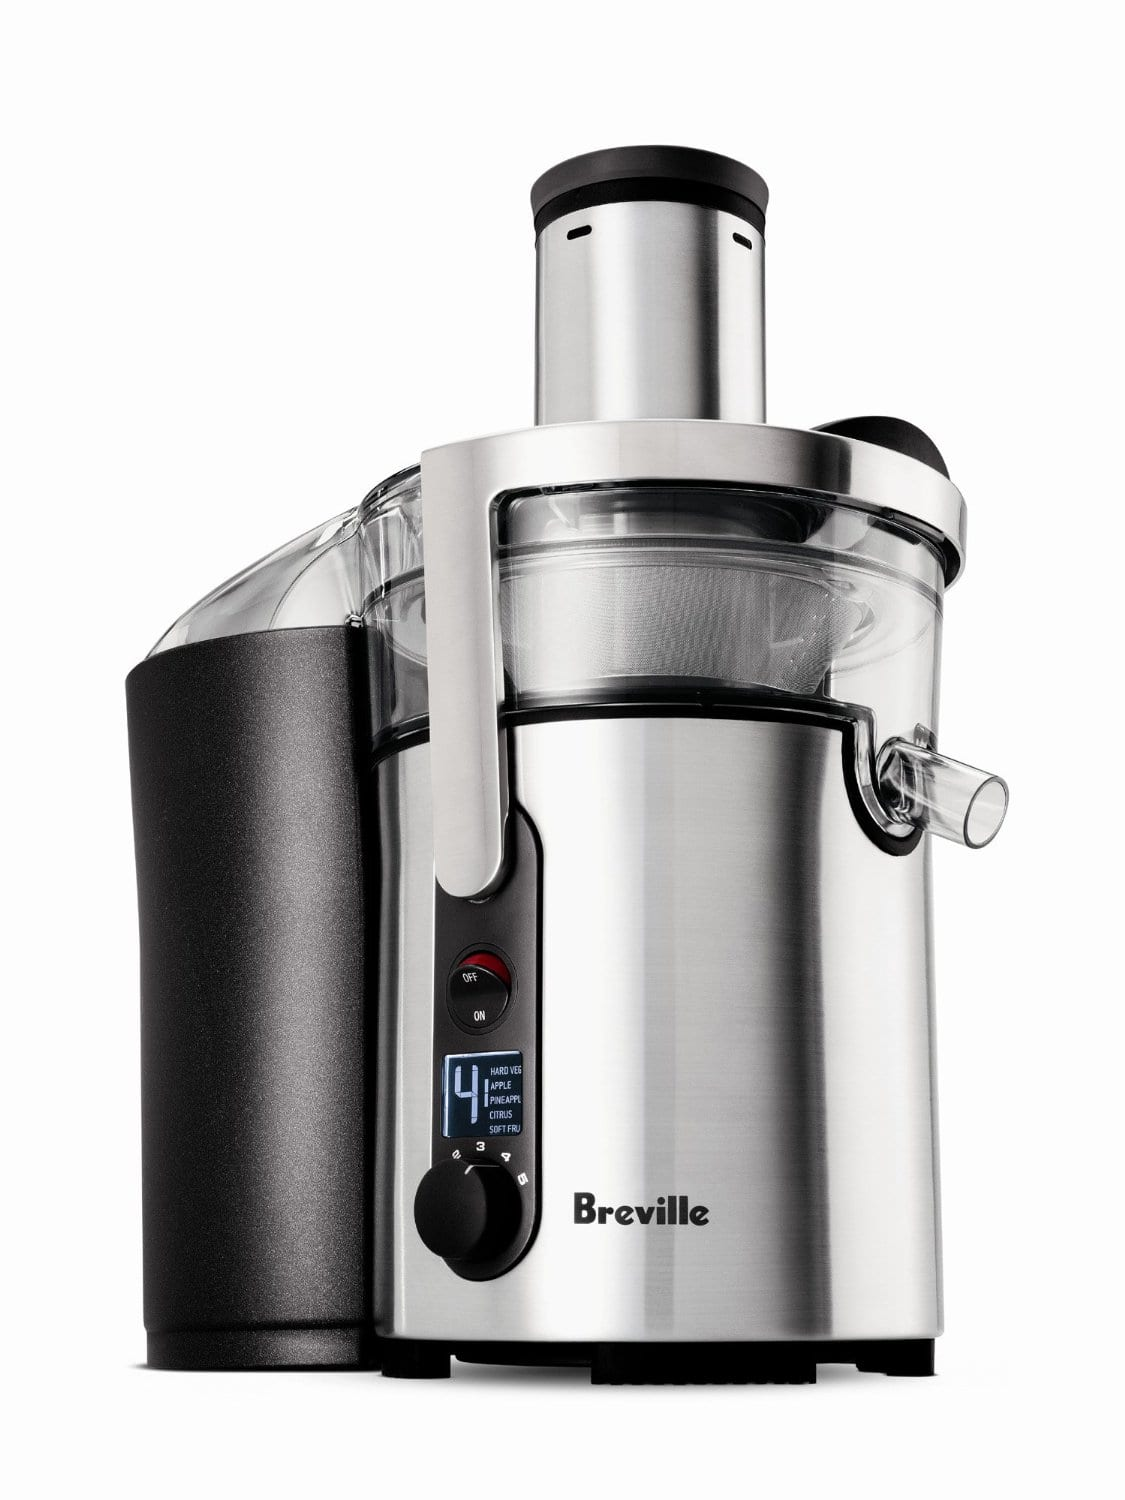 Breville Juice 900W Fountain Multi-Speed Stainless Steel Juicer (BJE510XL) $134.99 + Free Shipping